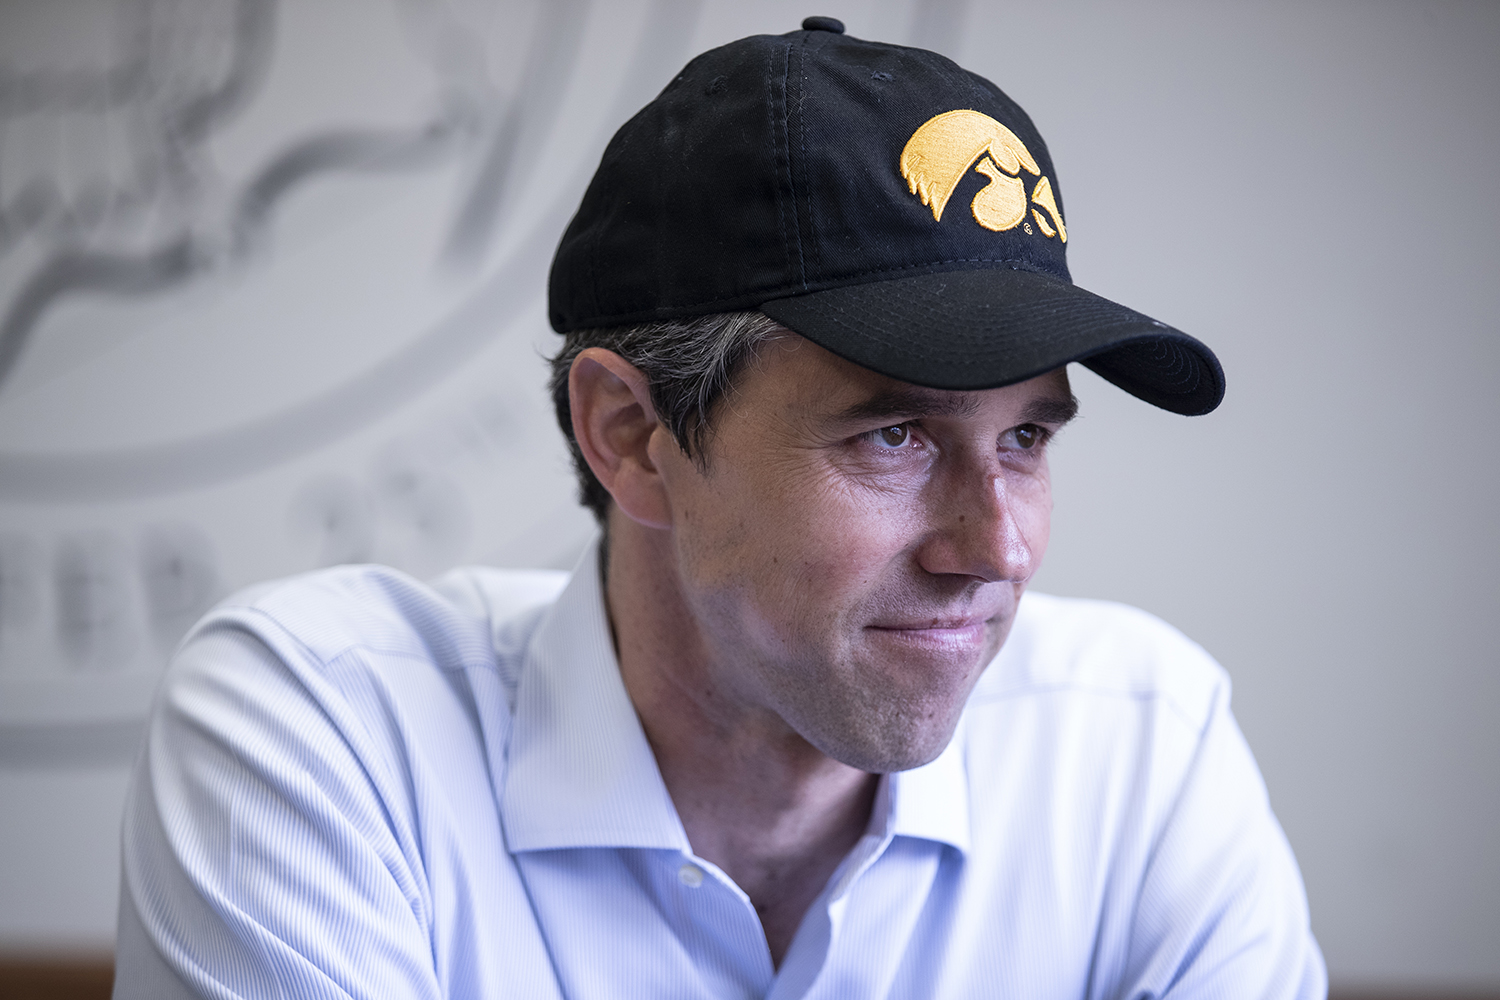 Beto O'Rourke sits down for an interview with Daily Iowan staff in the IMU on April 7, 2019. O'Rourke will be running for the democratic nomination for president.